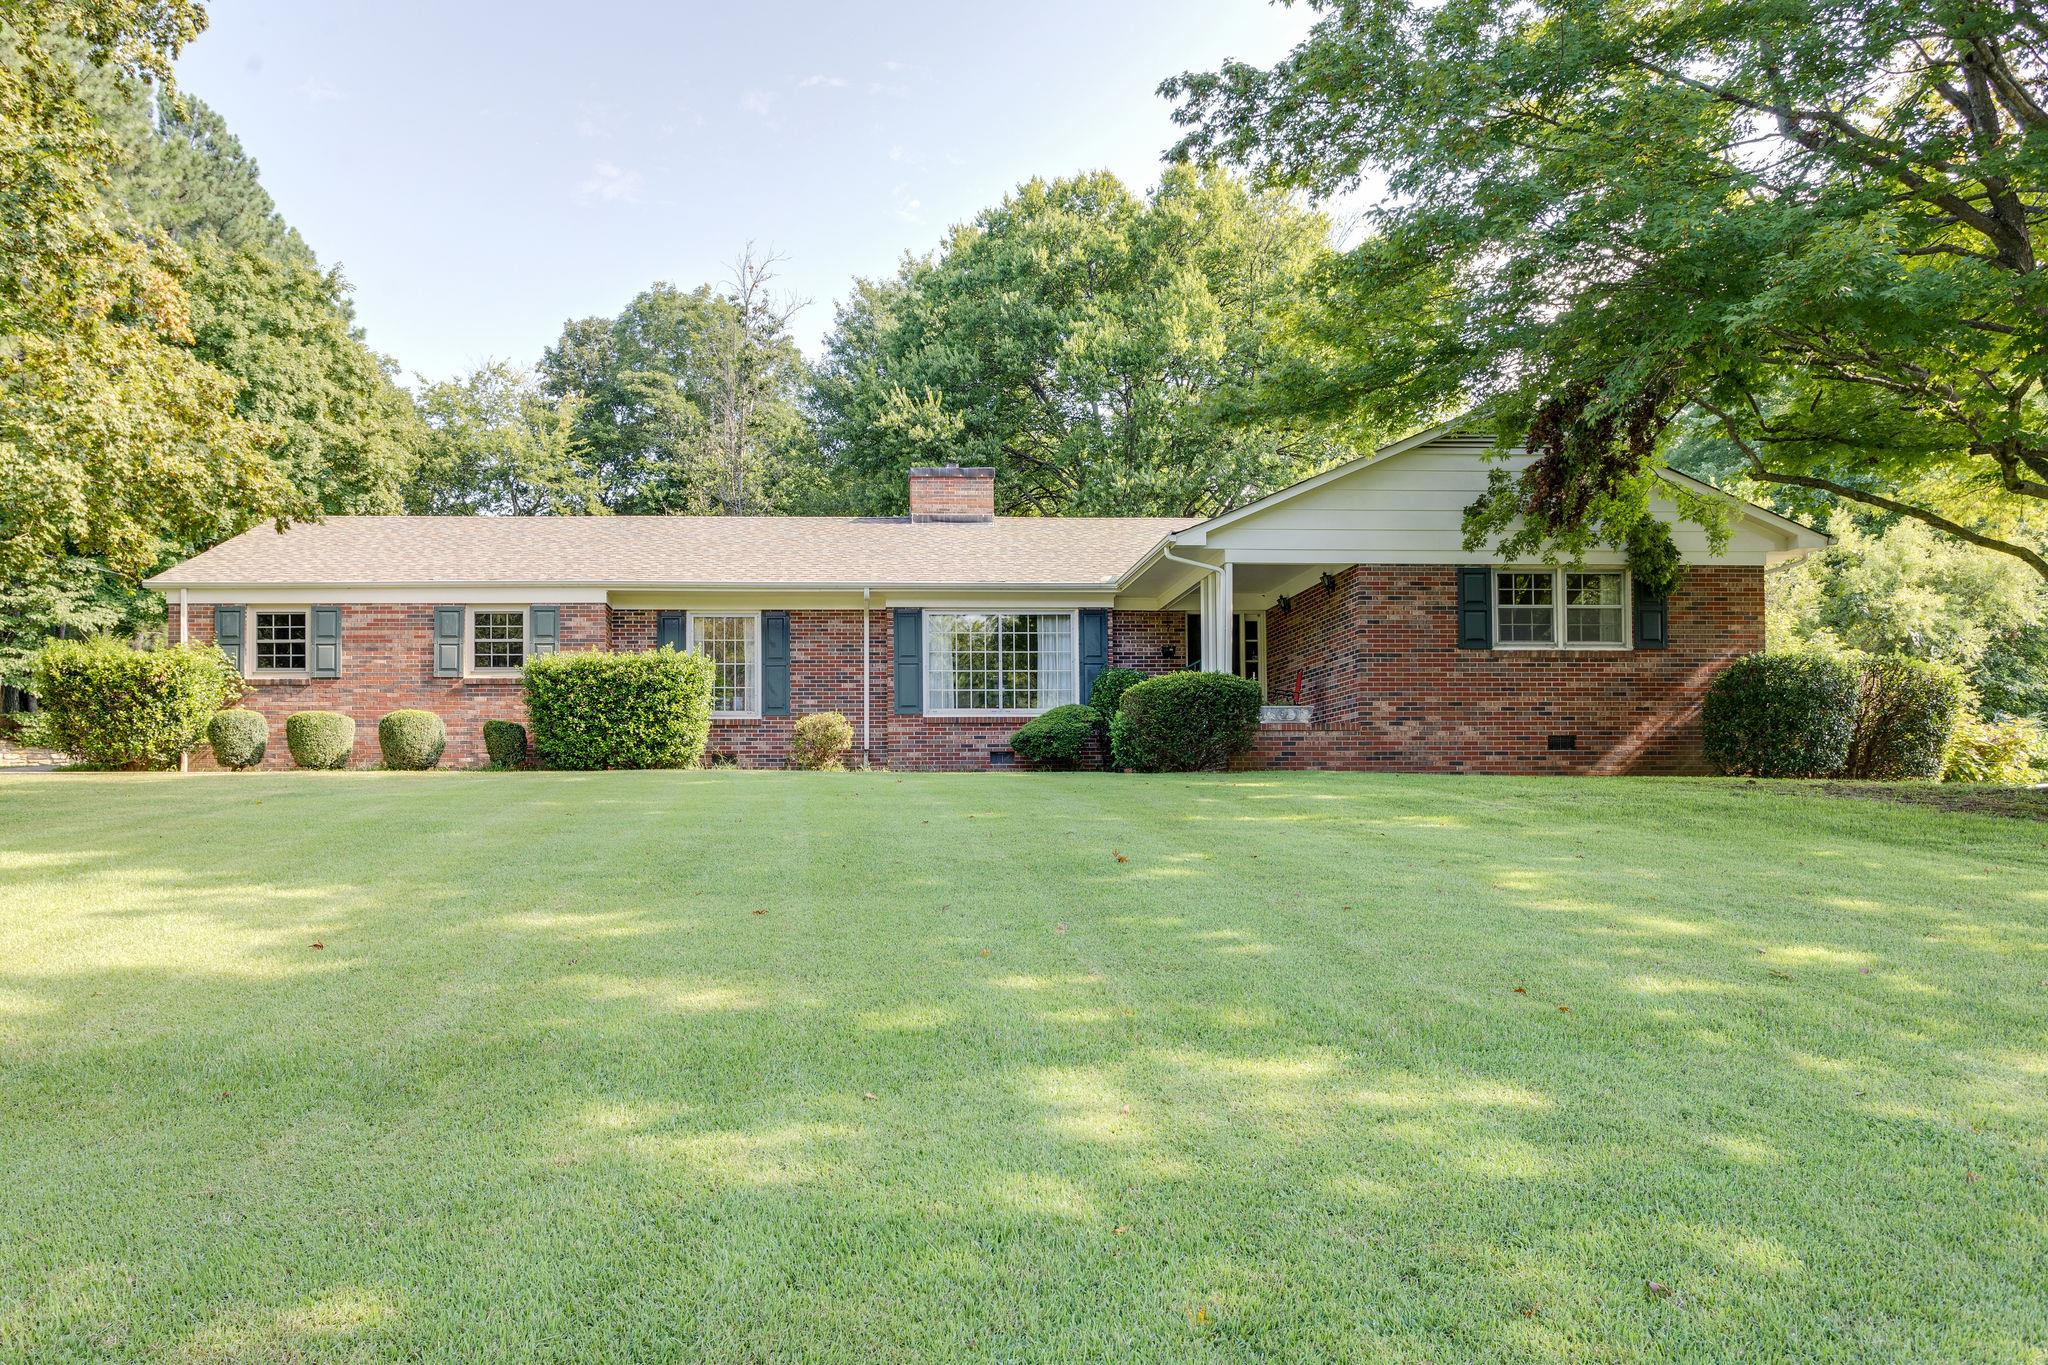 1840 Lakehill Circle, Lewisburg, TN 37091 - Lewisburg, TN real estate listing